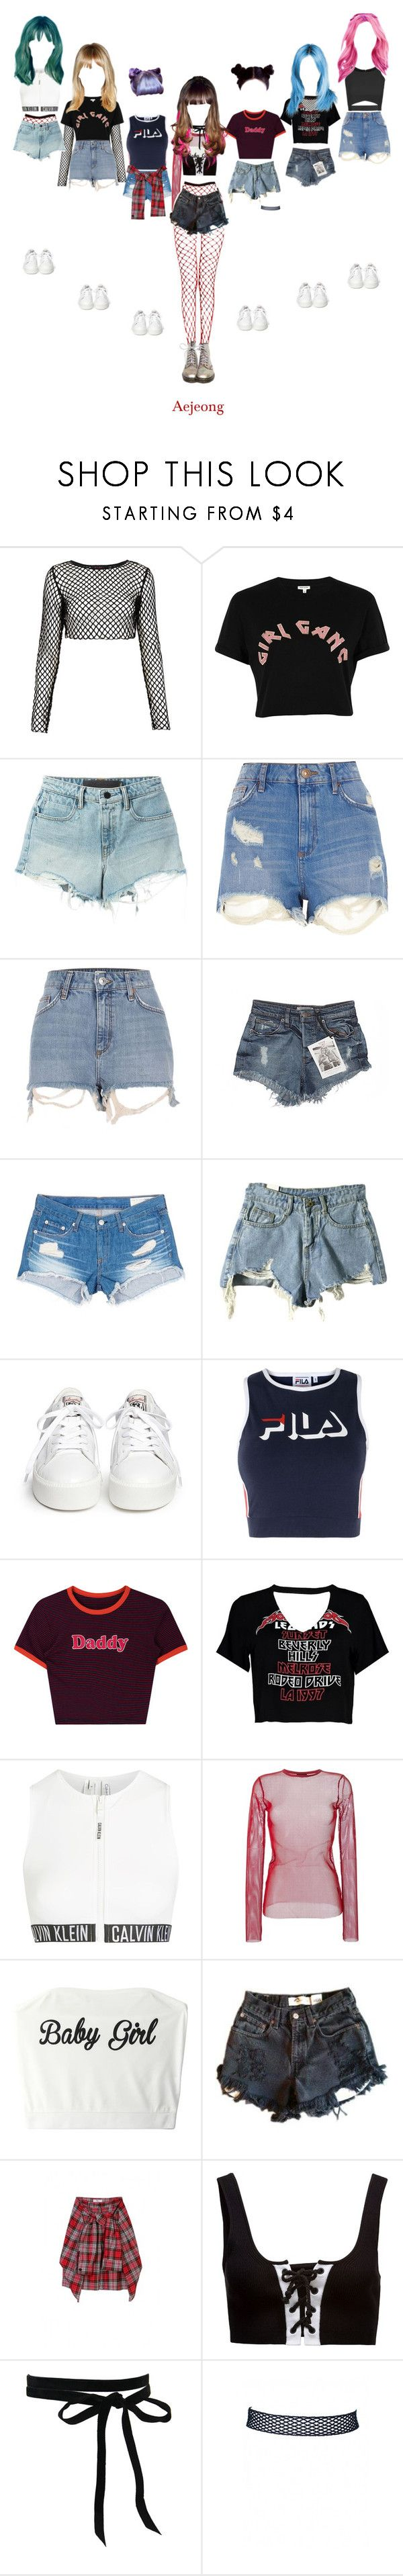 """Aejeong • One More Time"" by kkomppul ❤ liked on Polyvore featuring Motel, River Island, T By Alexander Wang, GUESS, rag & bone/JEAN, Ash, Fila, Boohoo, Calvin Klein and G.V.G.V."